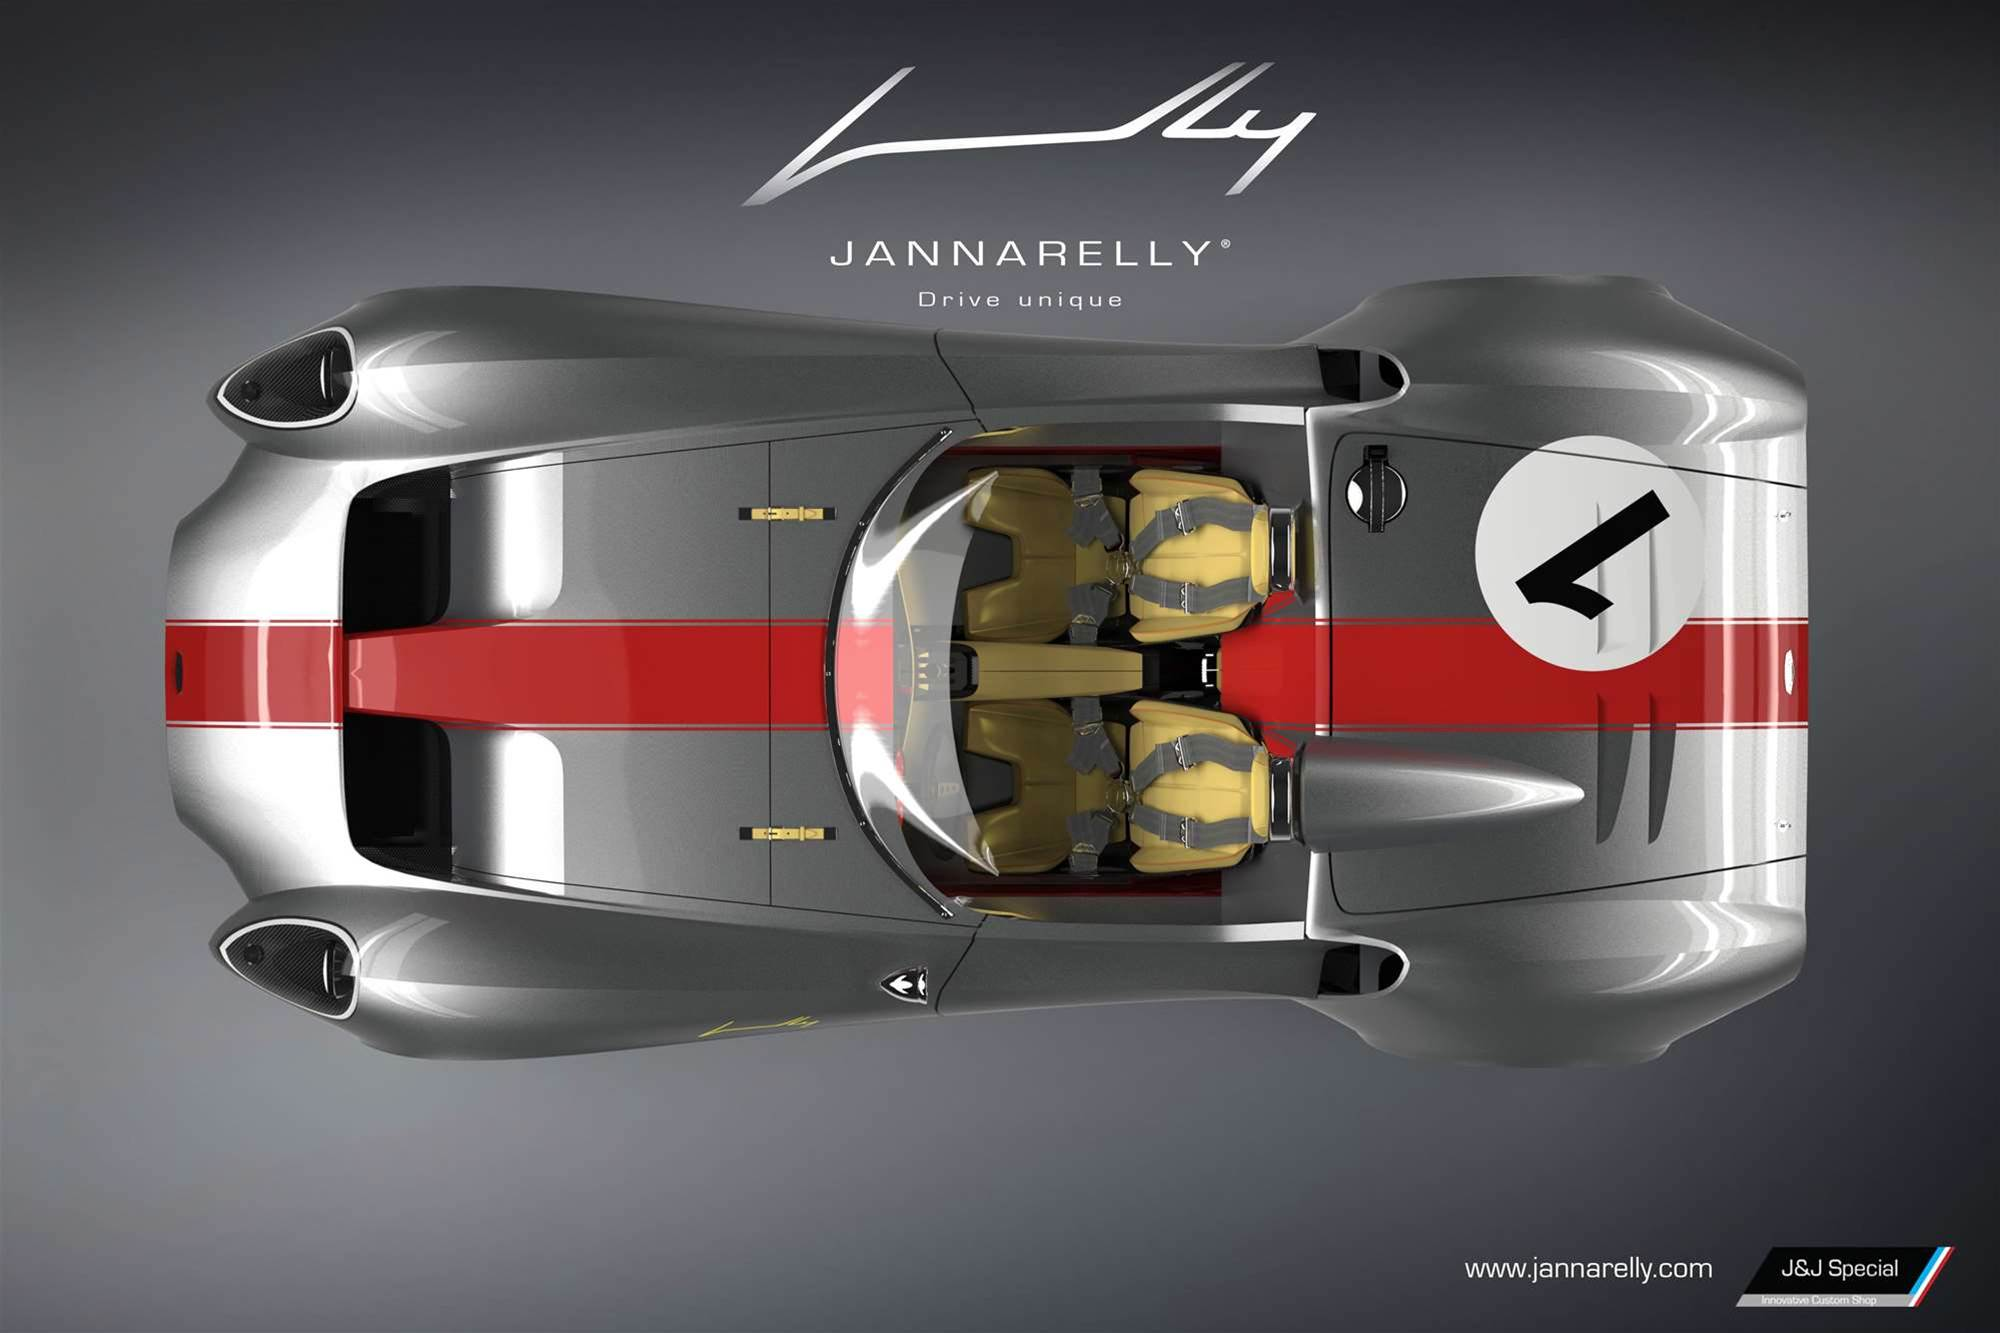 Jannarelly Builds a New Car Company on Old-Car Style